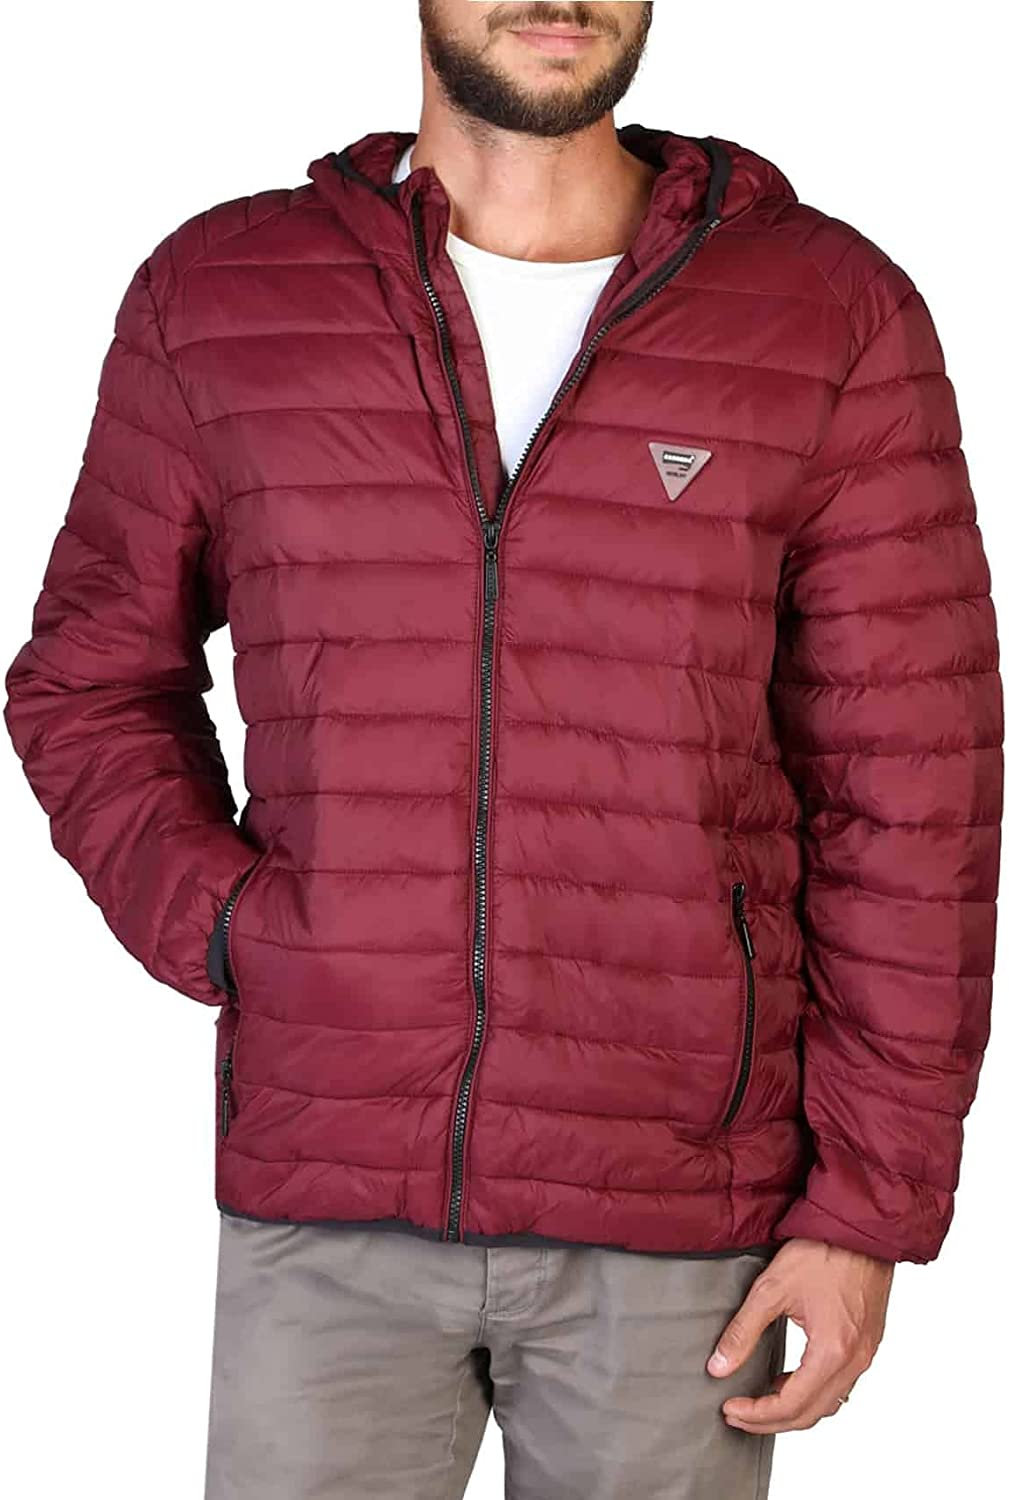 Max 58% OFF Carrera Bargain Jeans 408_1417X Outerwear Jacket